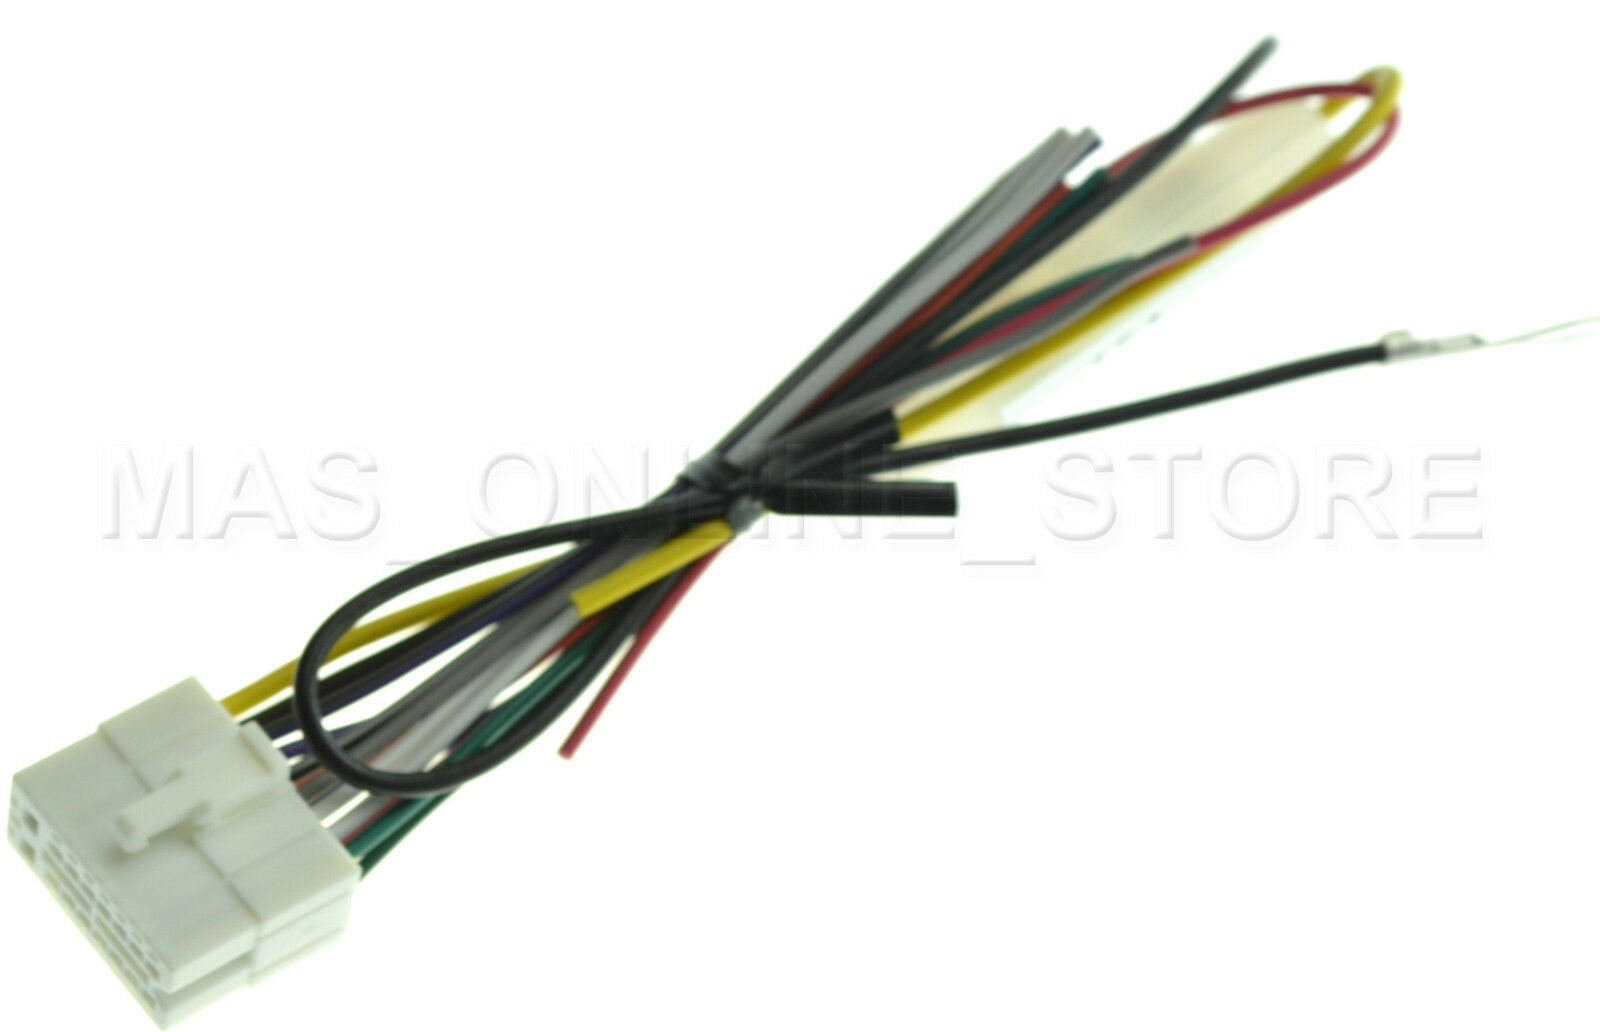 Clarion M-303 M303 Genuine Wire Harness *pay Today Ships Today* 1 of 4Only  2 available Clarion M-303 M303 Genuine Wire Harness ...